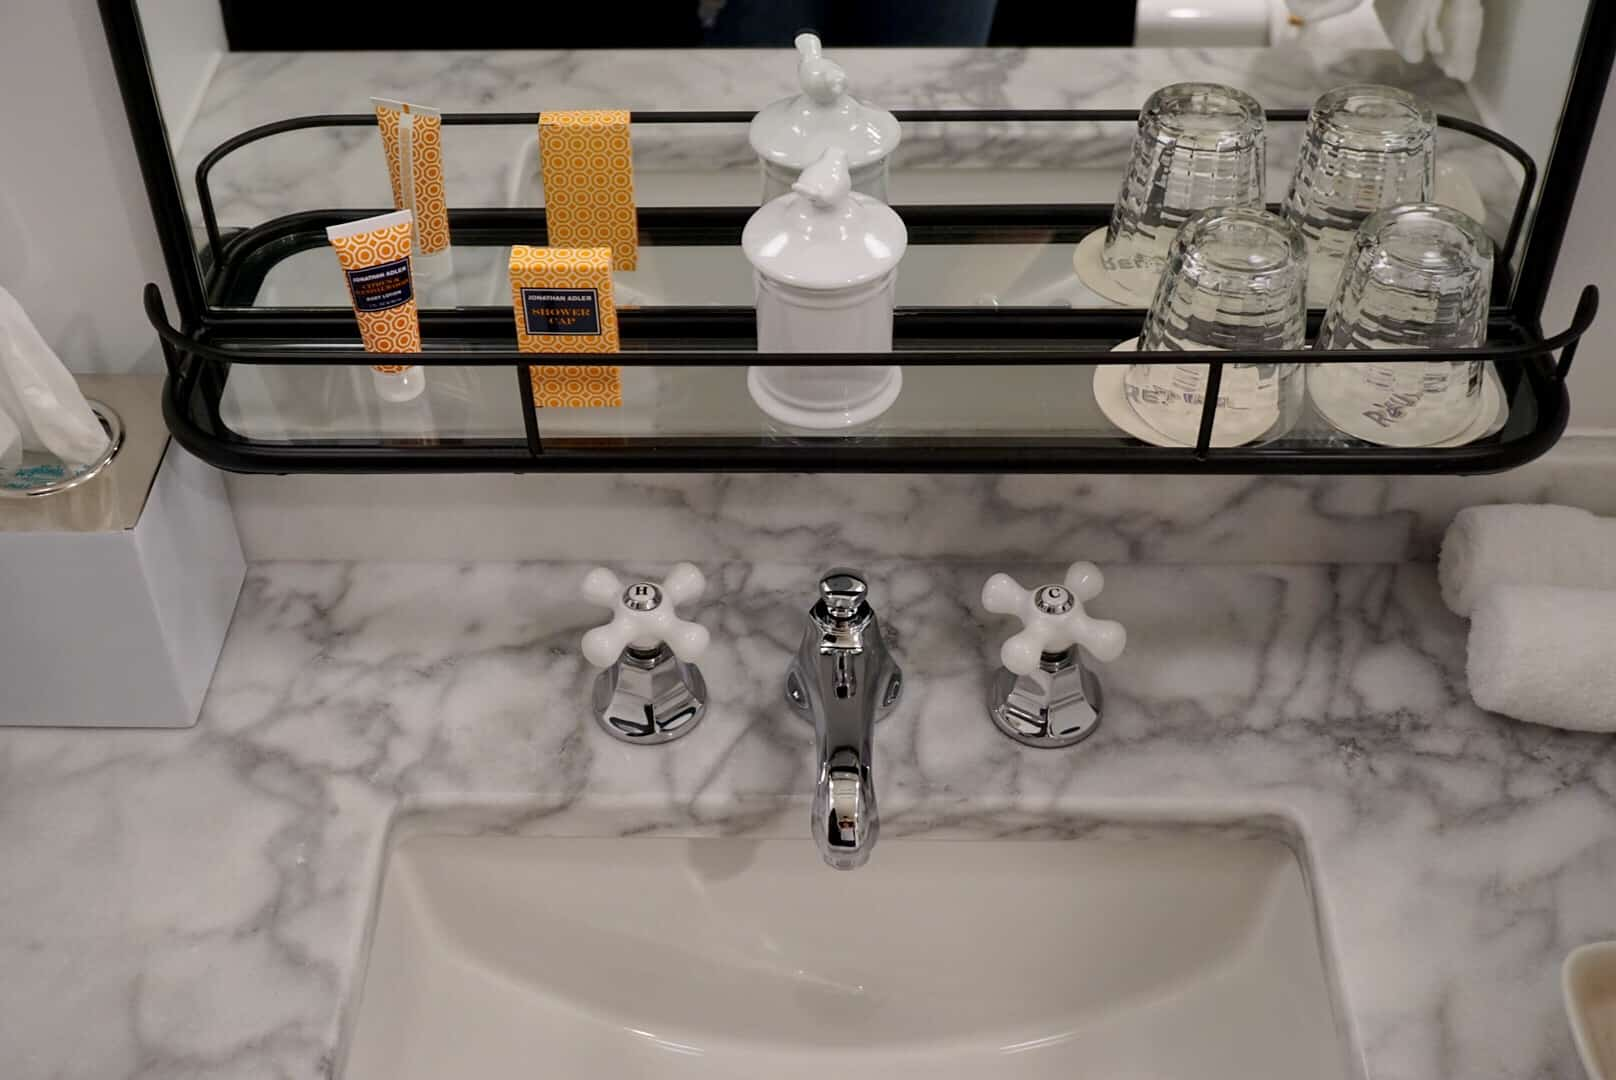 Baltimore Staycation at Hotel Revival - The Bathroom